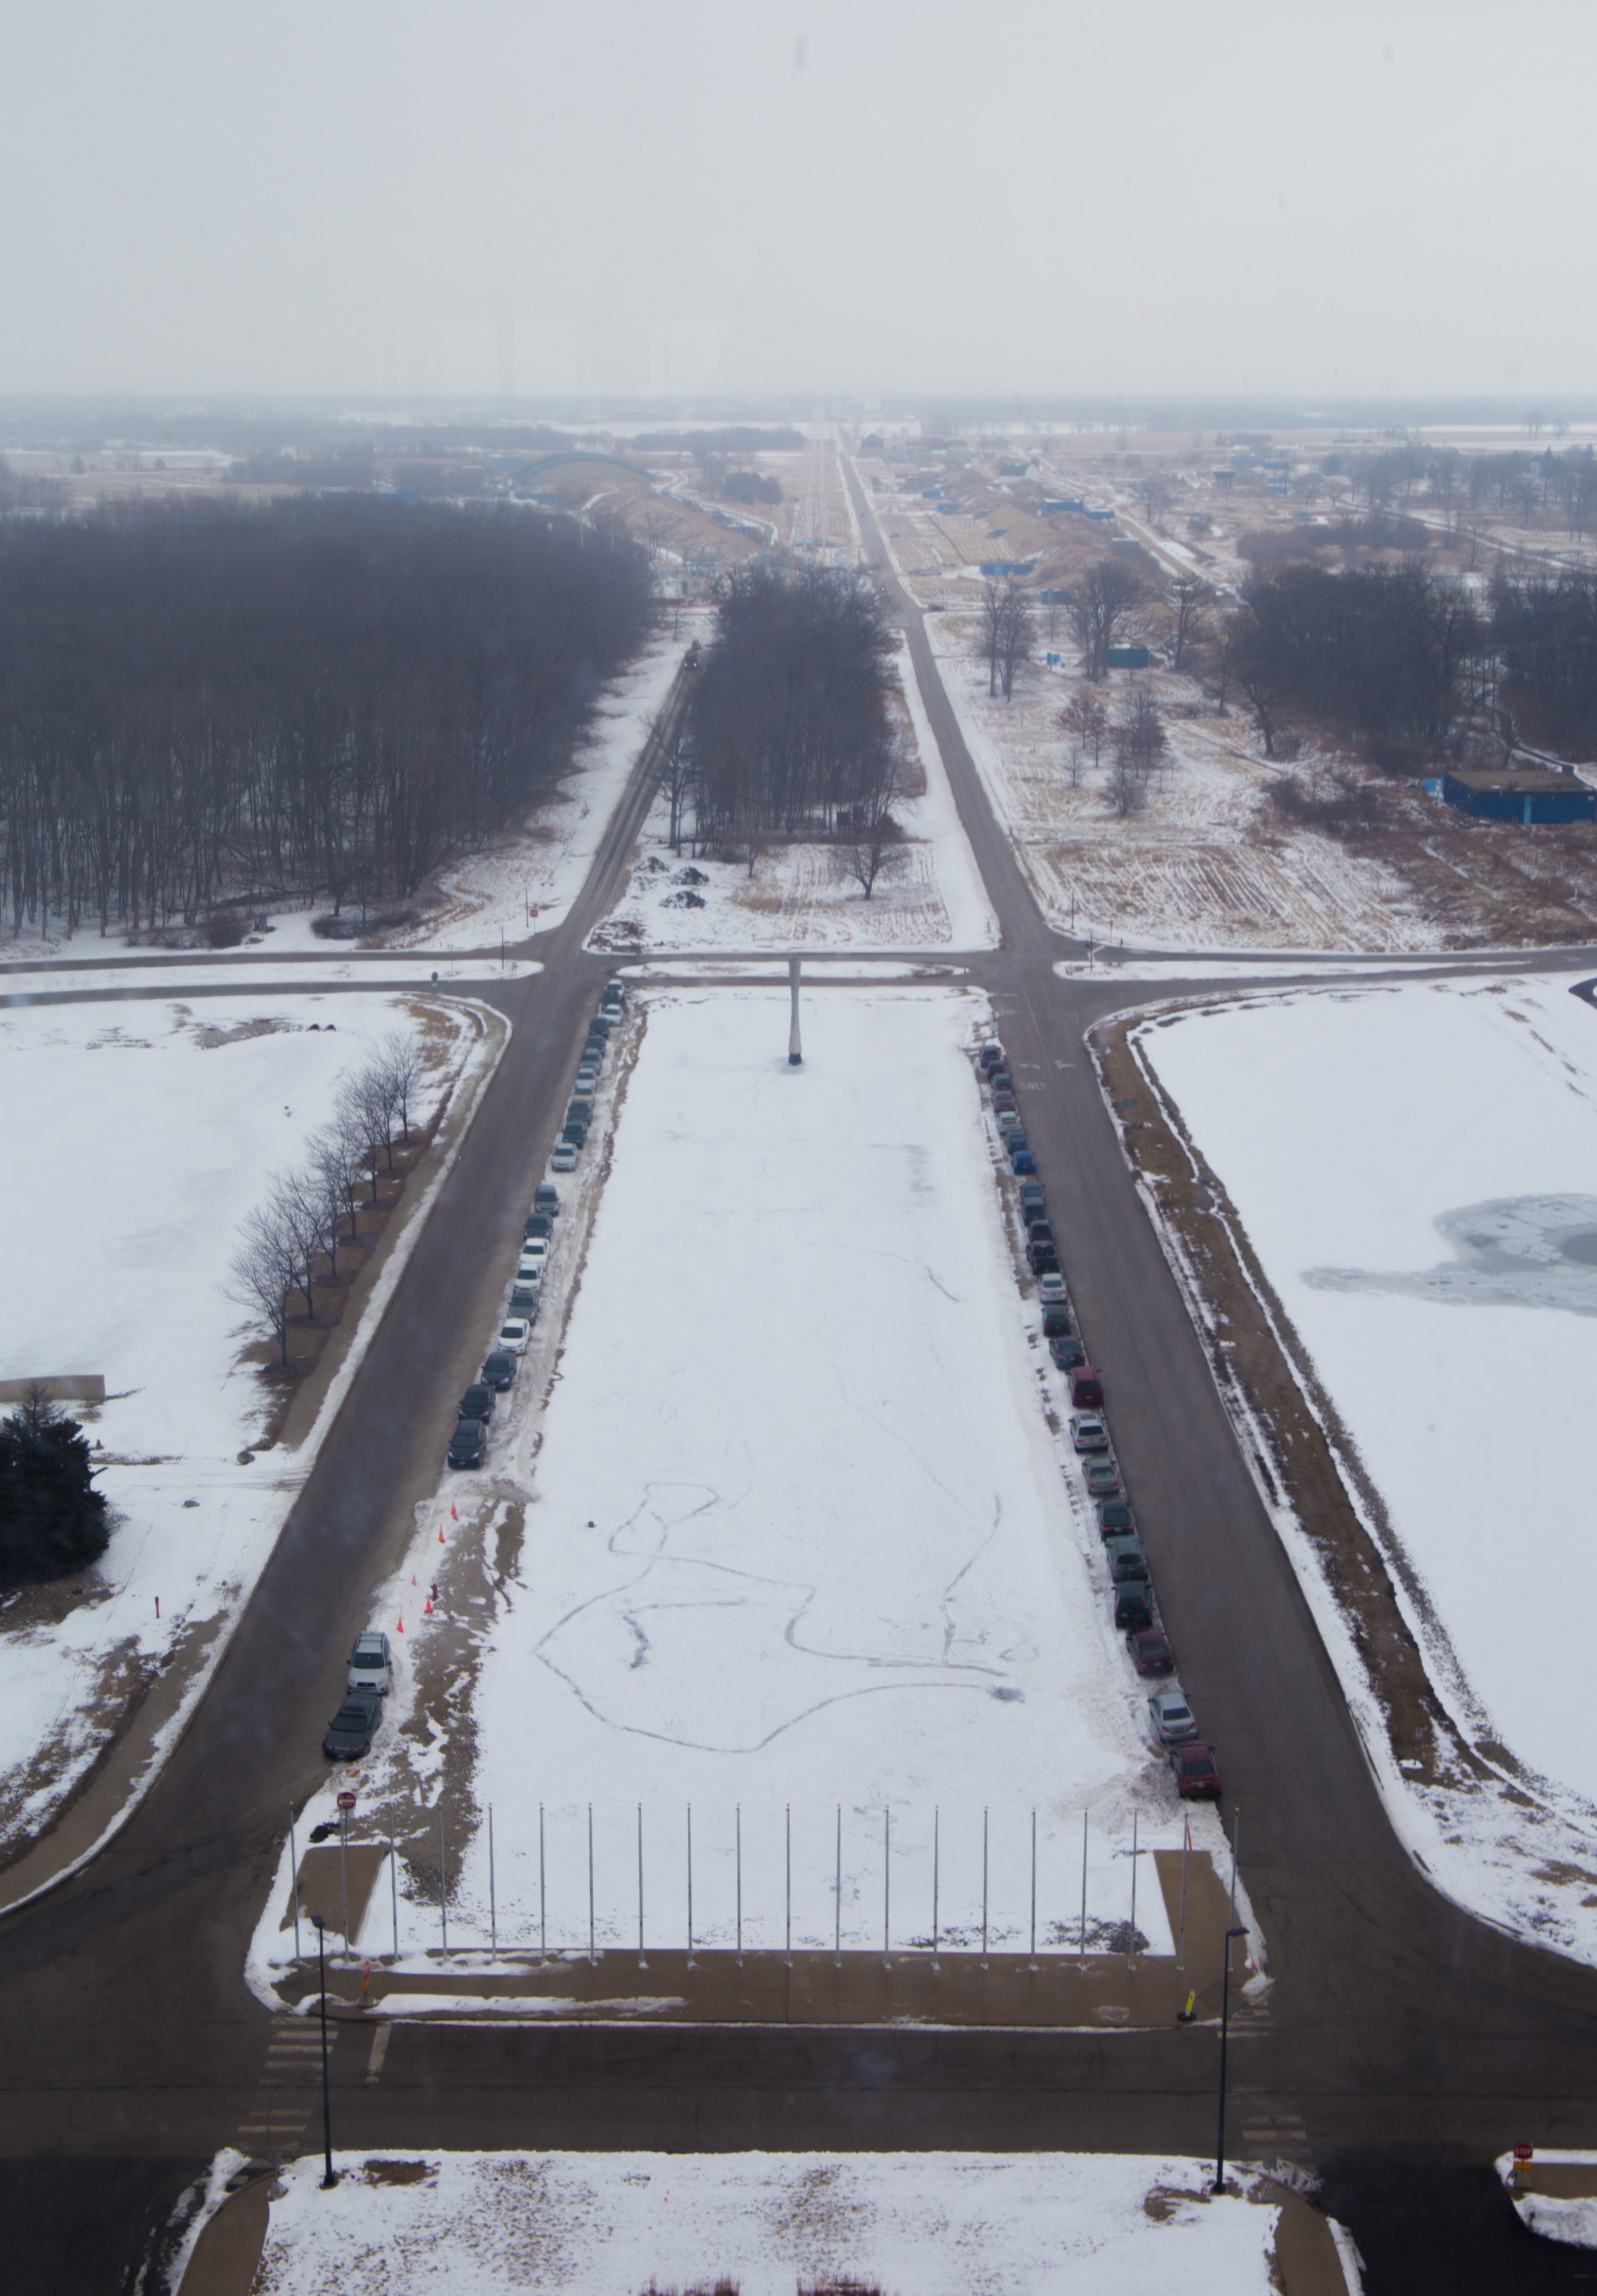 From the 15th floor of Wilson Hall, one can see the way a light blanket of snow covers lab grounds. Photo: Rashmi Shivni